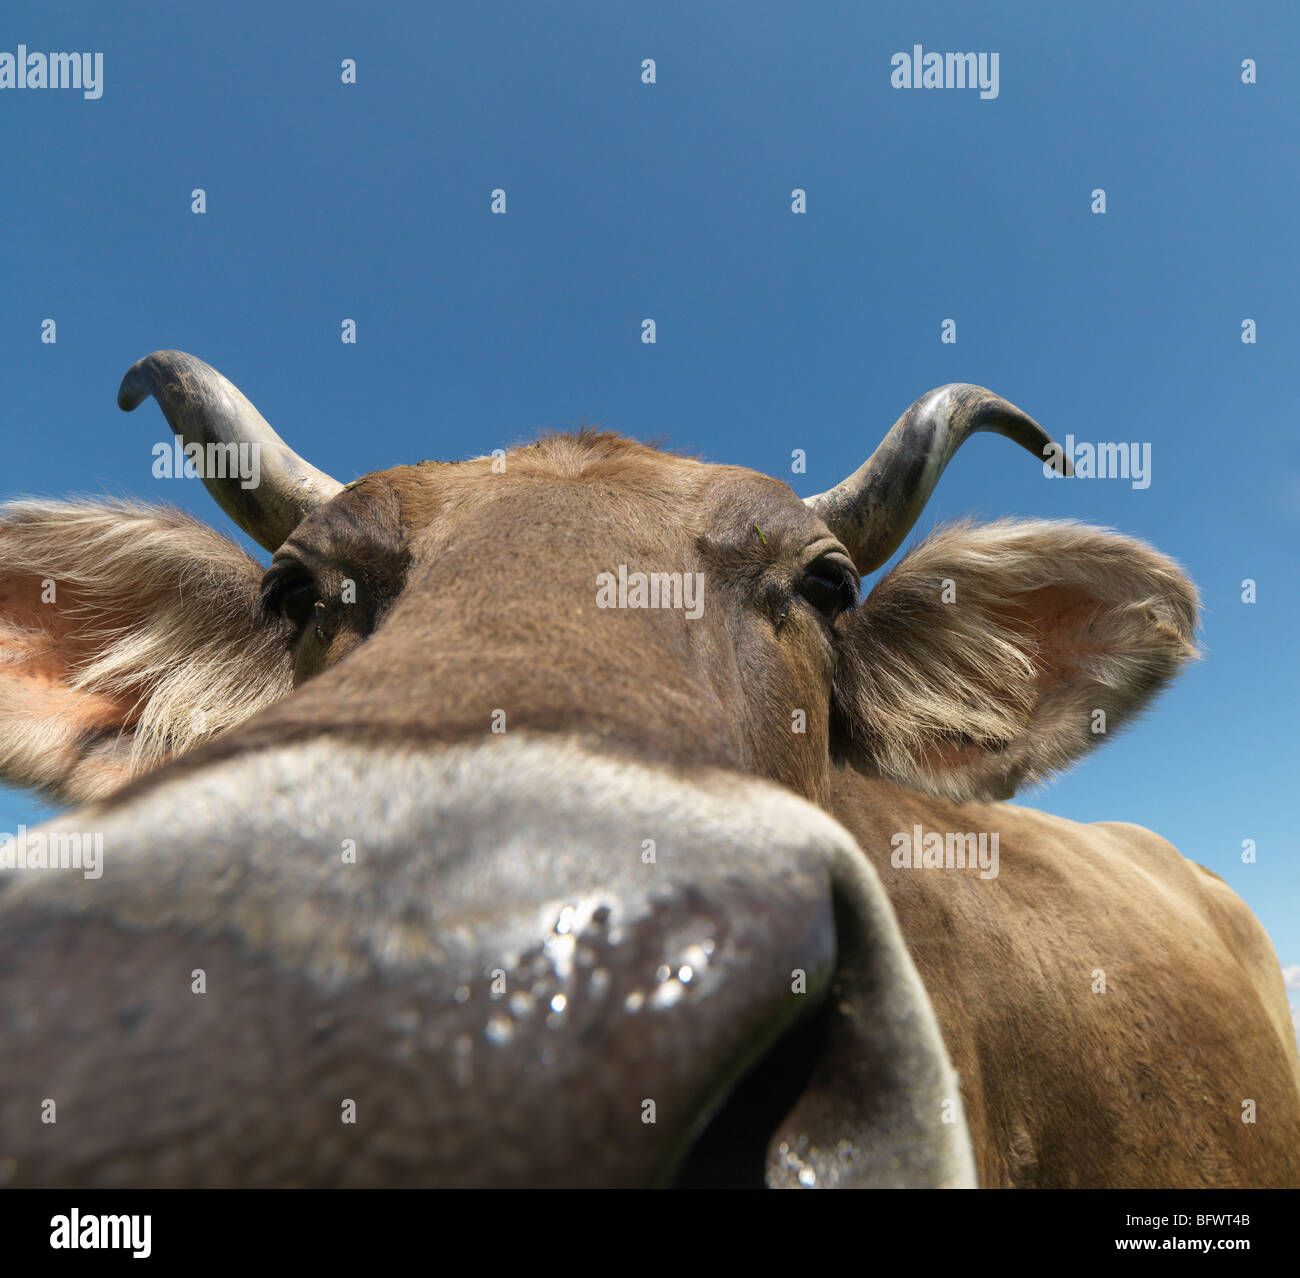 Cow in field, close-up - Stock Image